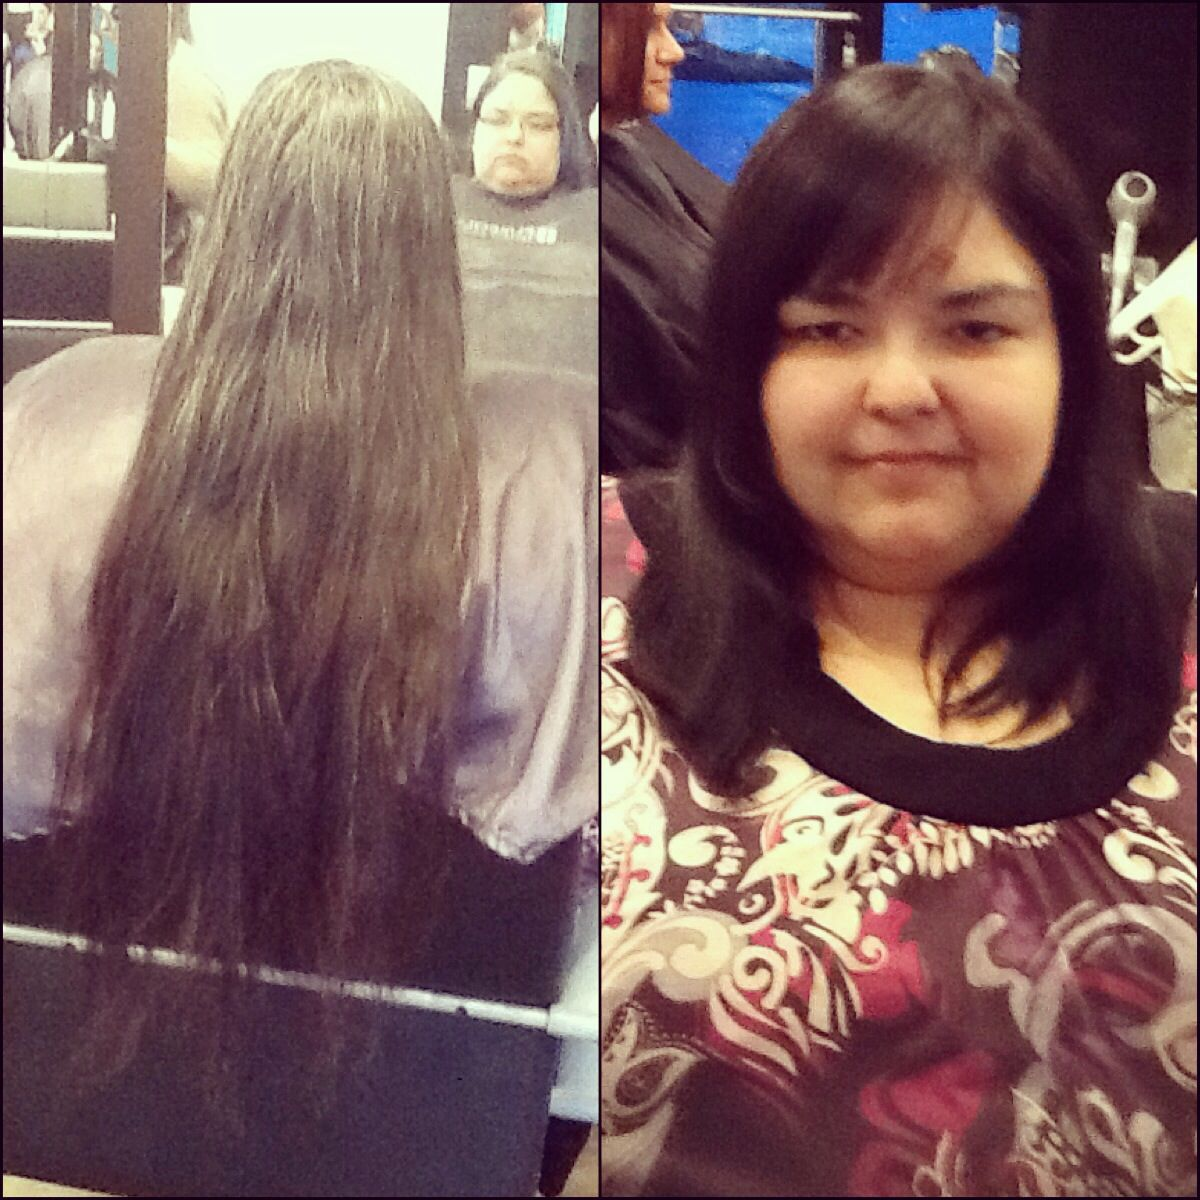 Before And After Locks Of Love Donation She Got A New Style A New Color Locks Of Love Donation Long Hair Styles Hair Styles